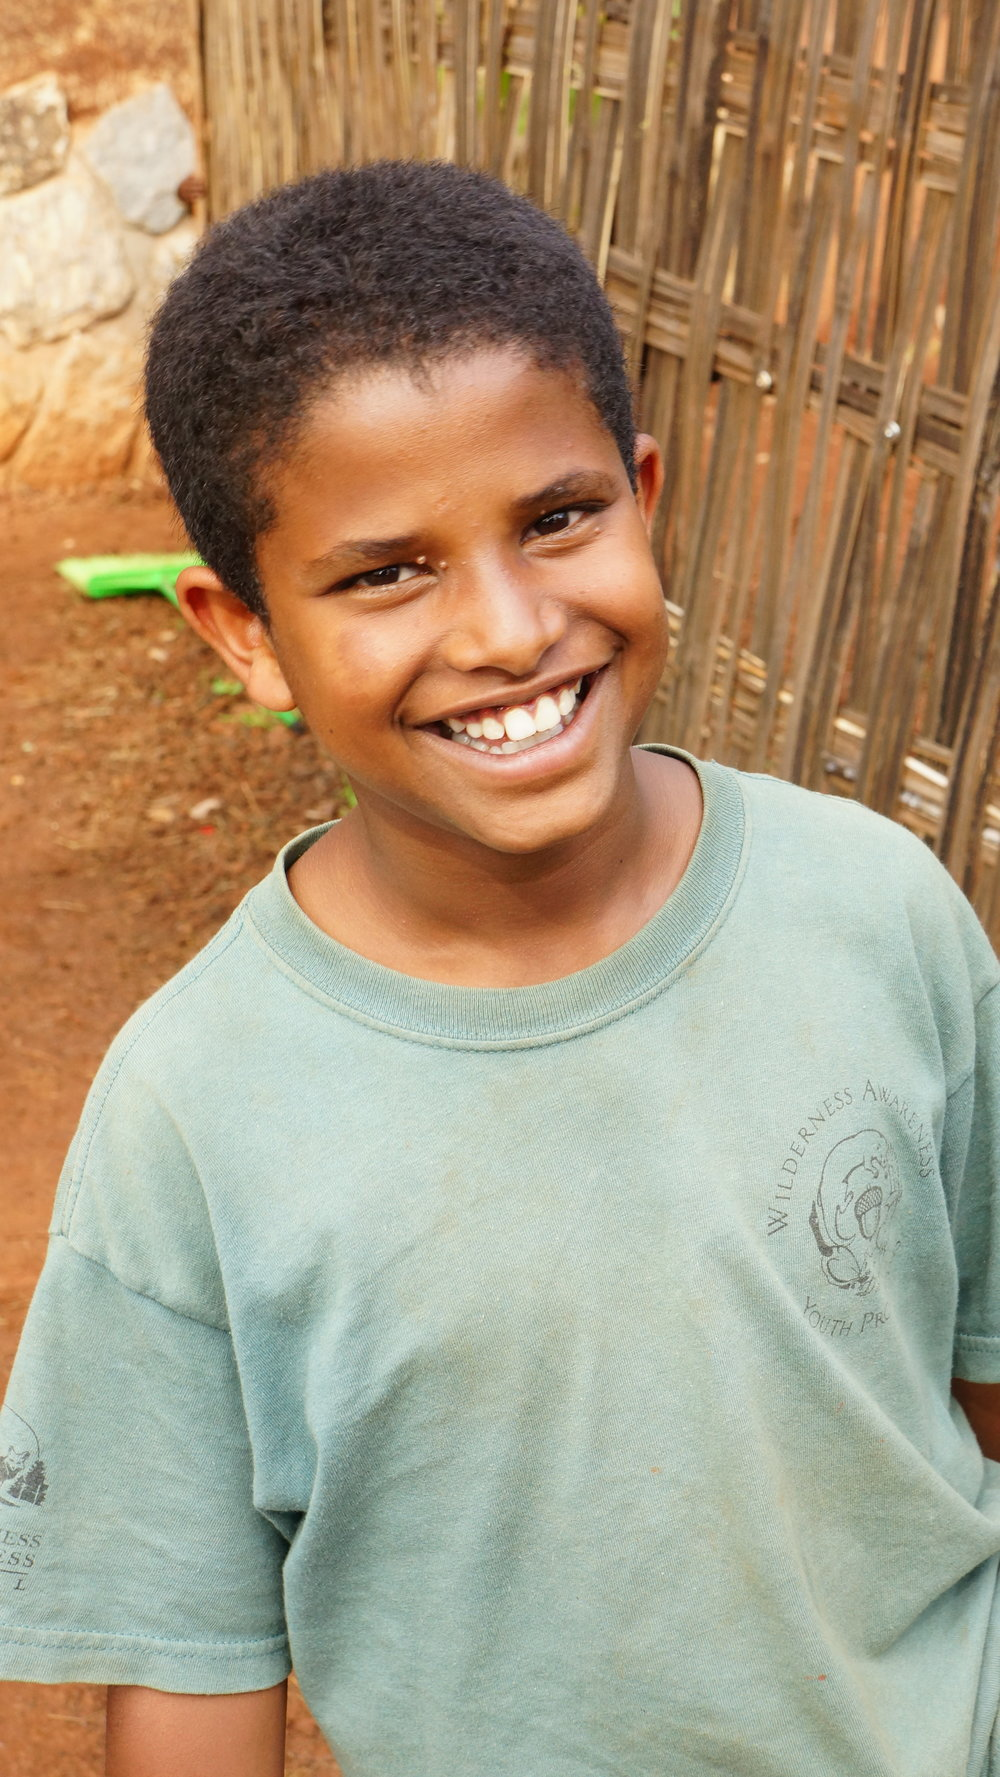 Nigatu   Nigatu came to us with a smile on his face and a kind, sweet spirit. He has adjusted really well to our care center, and has become good friends with the other older kids. Nigatu is generously sponsored by Olivia Cox-Fill.